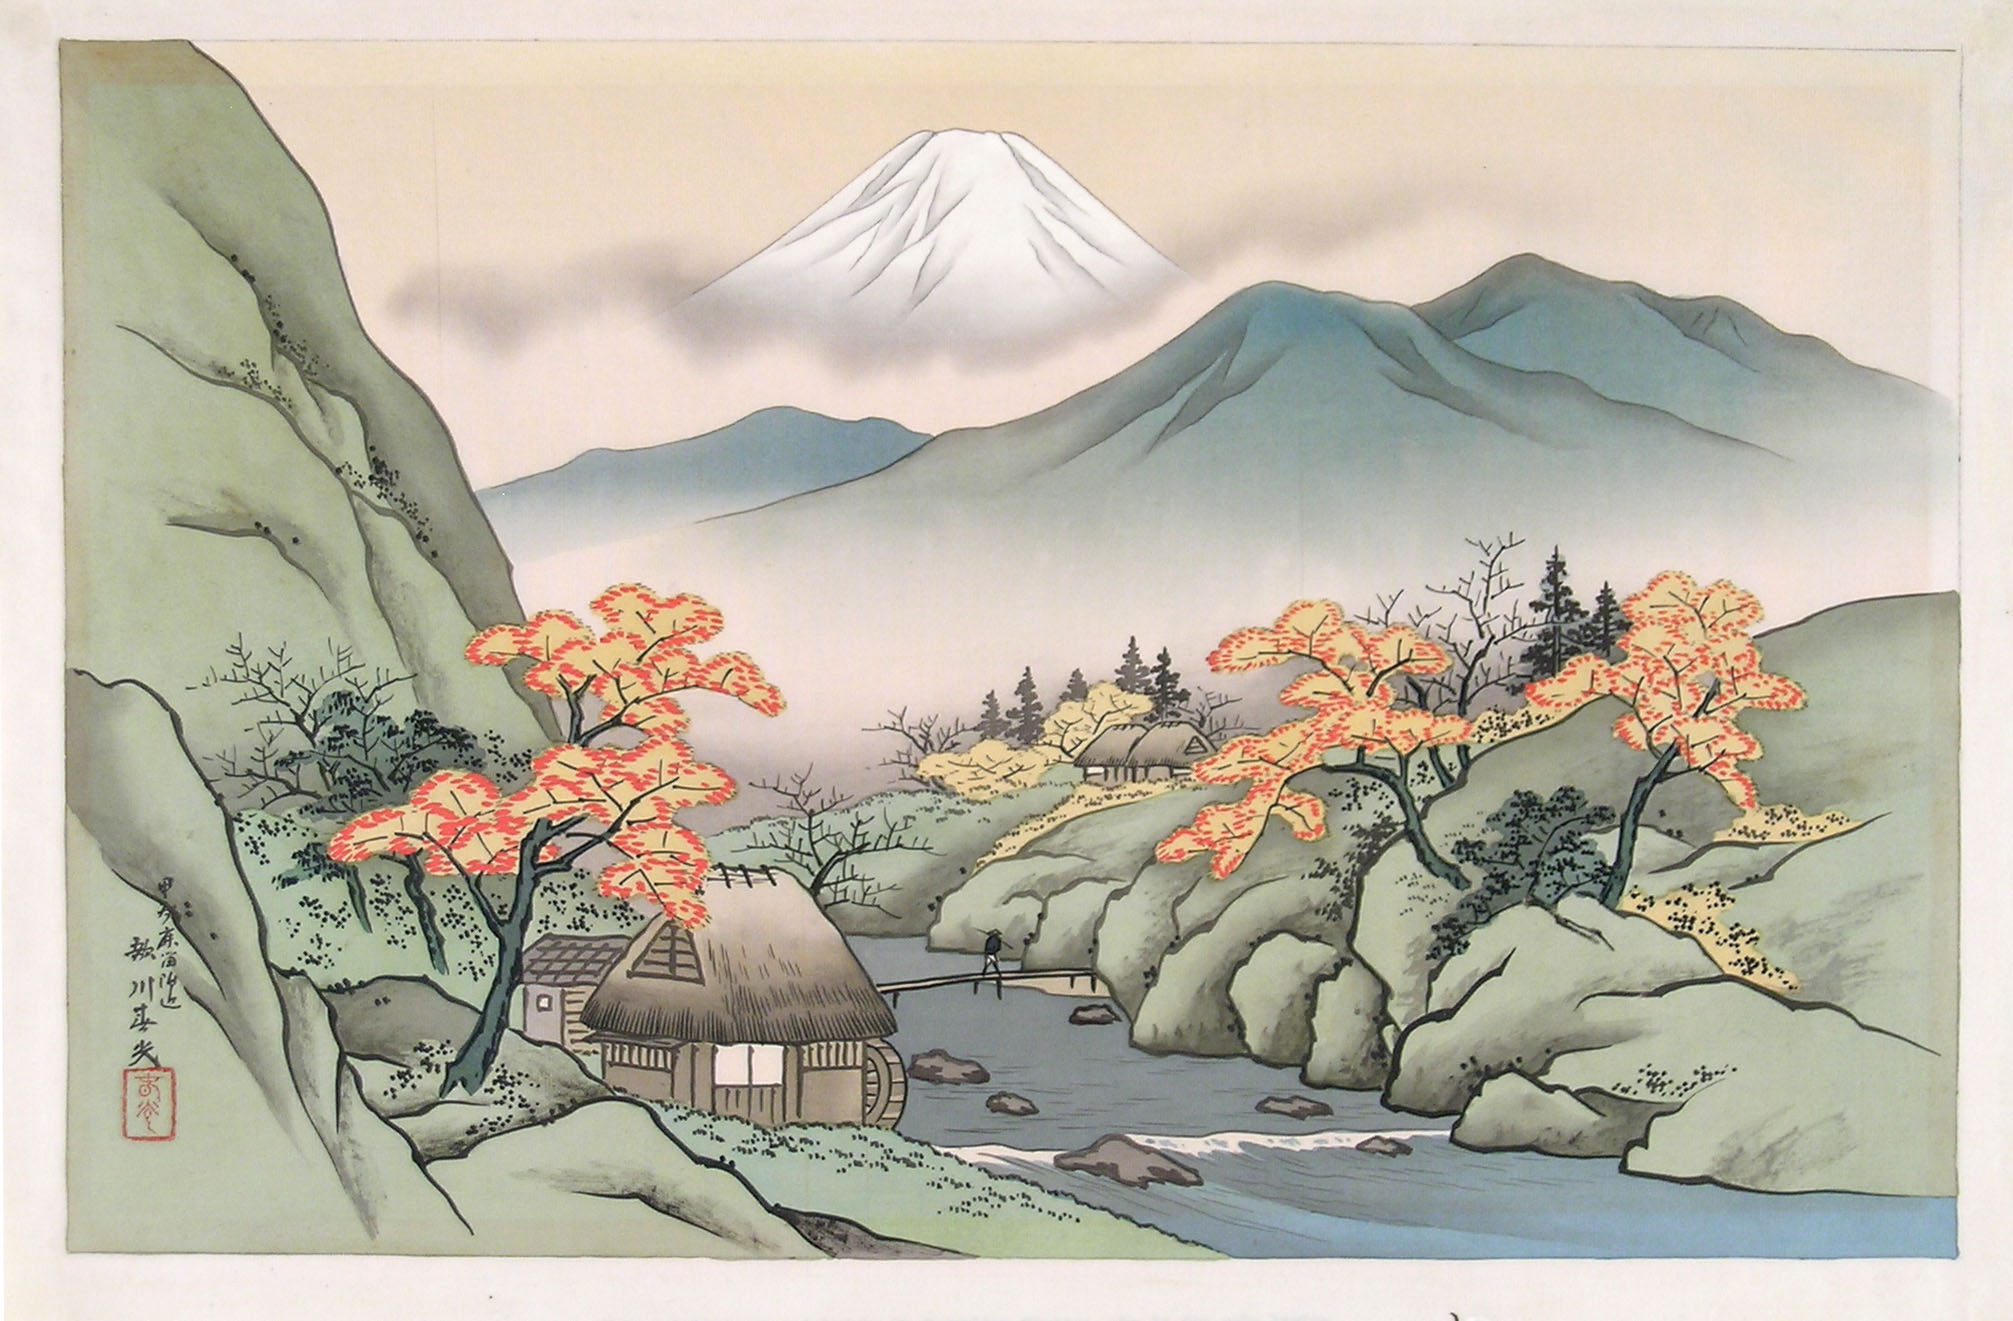 2013x1321 Harumitsu, Landscape With Mount Fuji And A Torrent